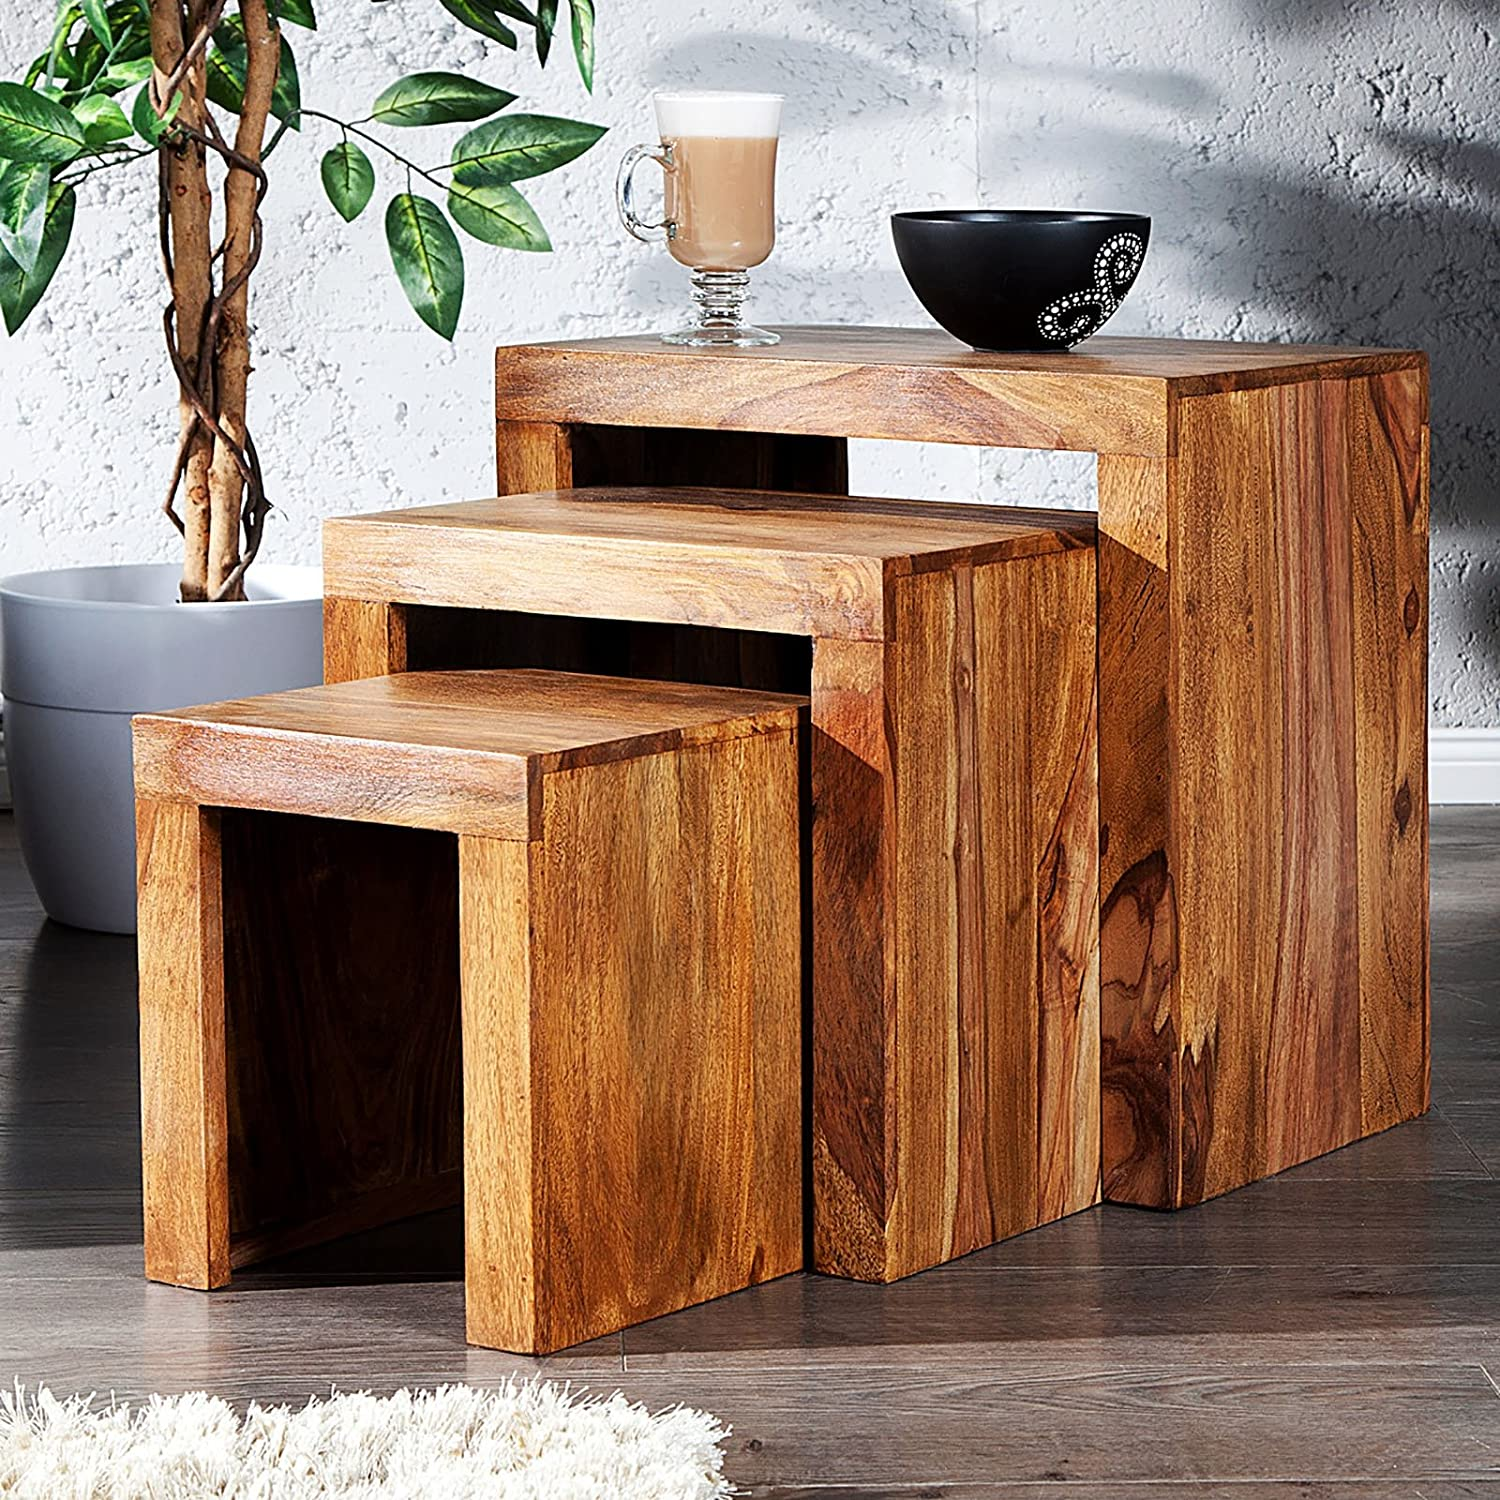 DESIGN DELIGHTS RUSTIC TABLE SET SHEESHAM 3 pcs sidetable made of massiv Shesham wood by xtadefactory